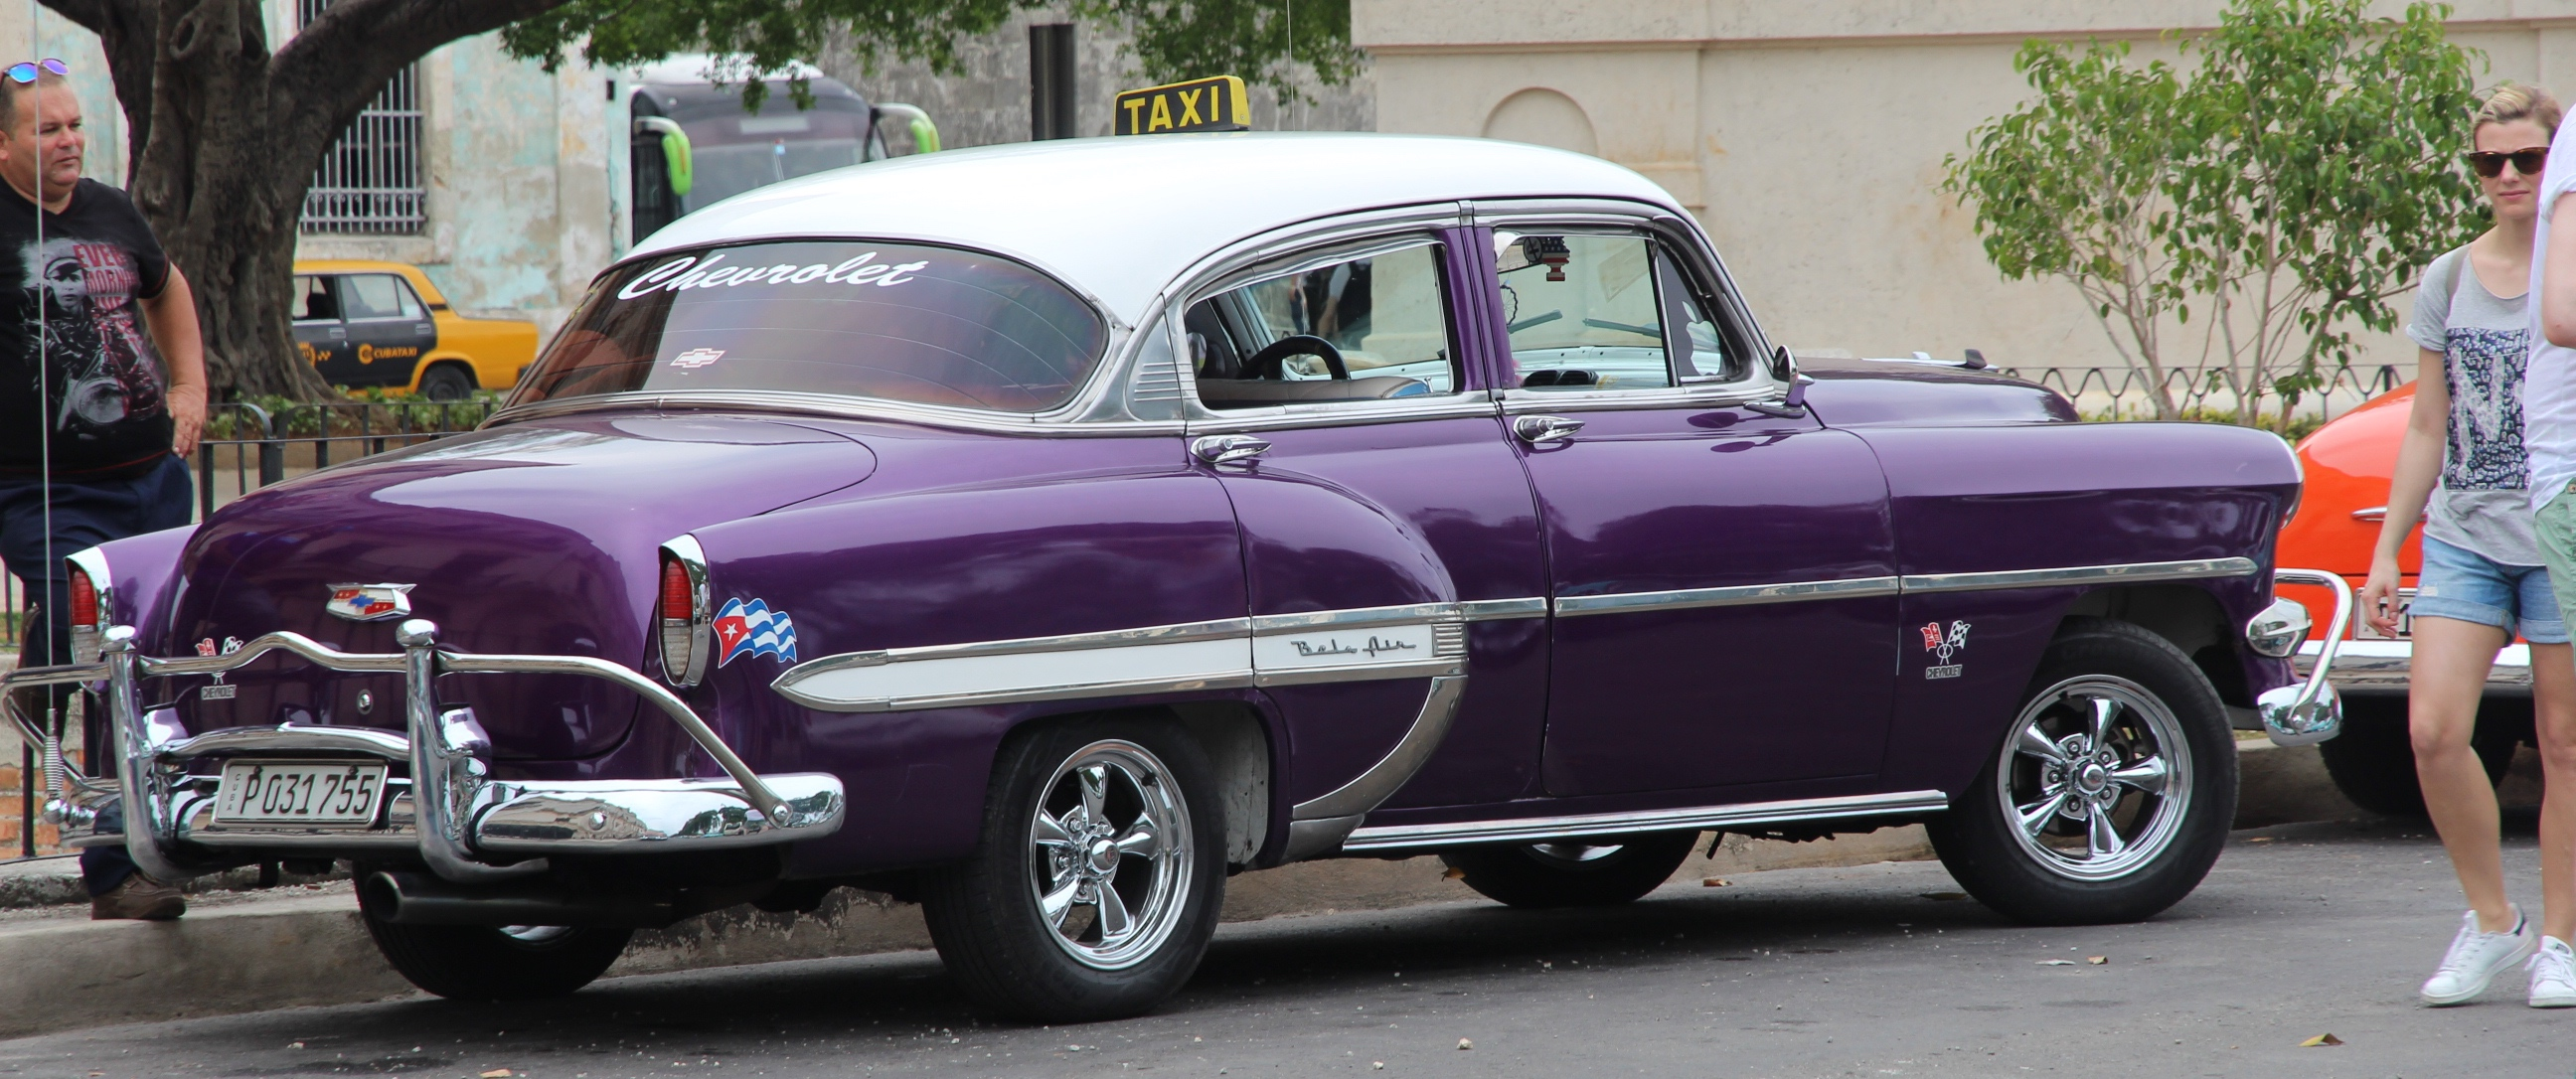 Vintage car, Cuba, purple and white   Where to next?